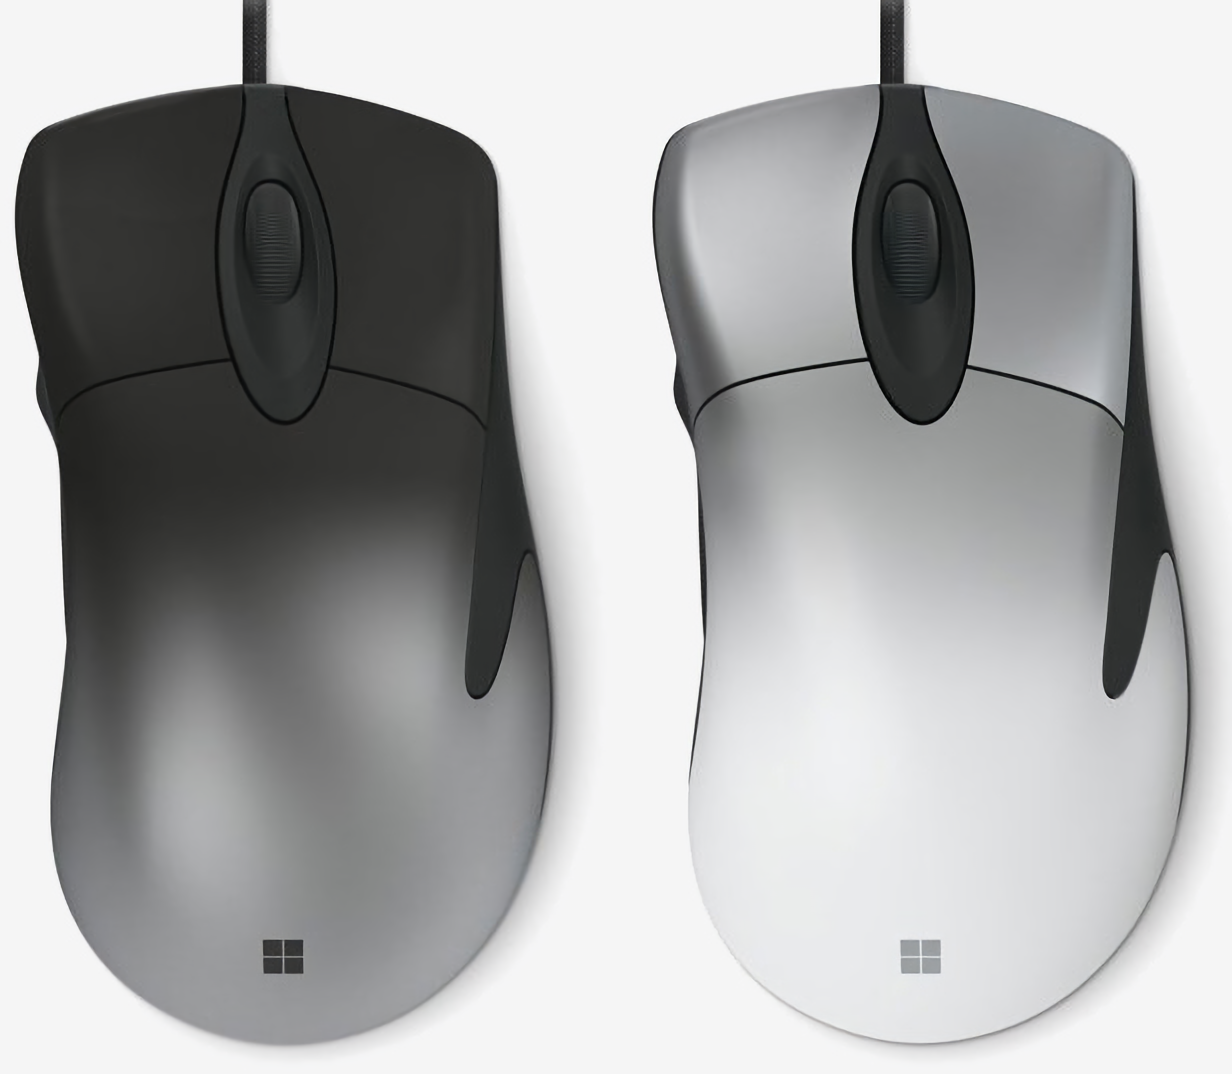 Microsoft is Making a Pro IntelliMouse Too